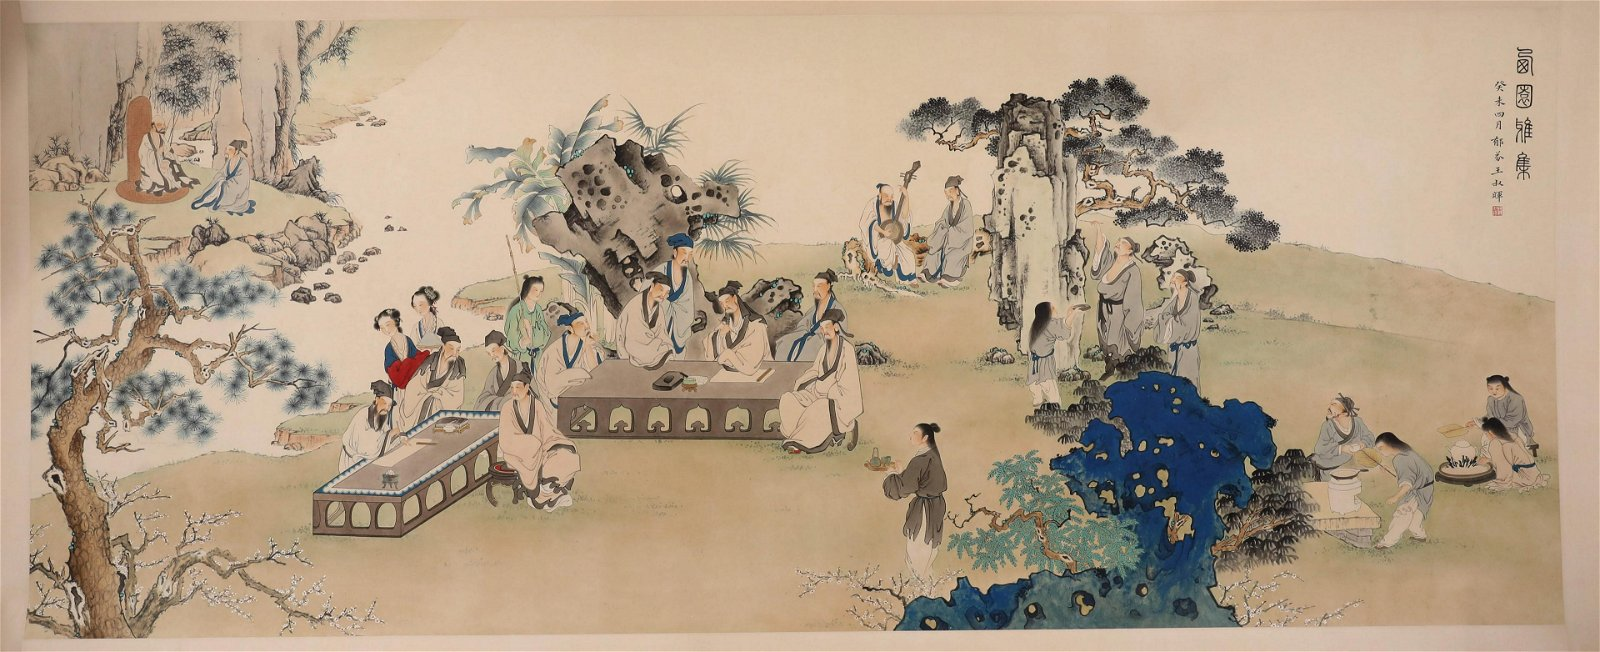 A Fine Chinese Hand-drawn Painting Signed By Wang Shu